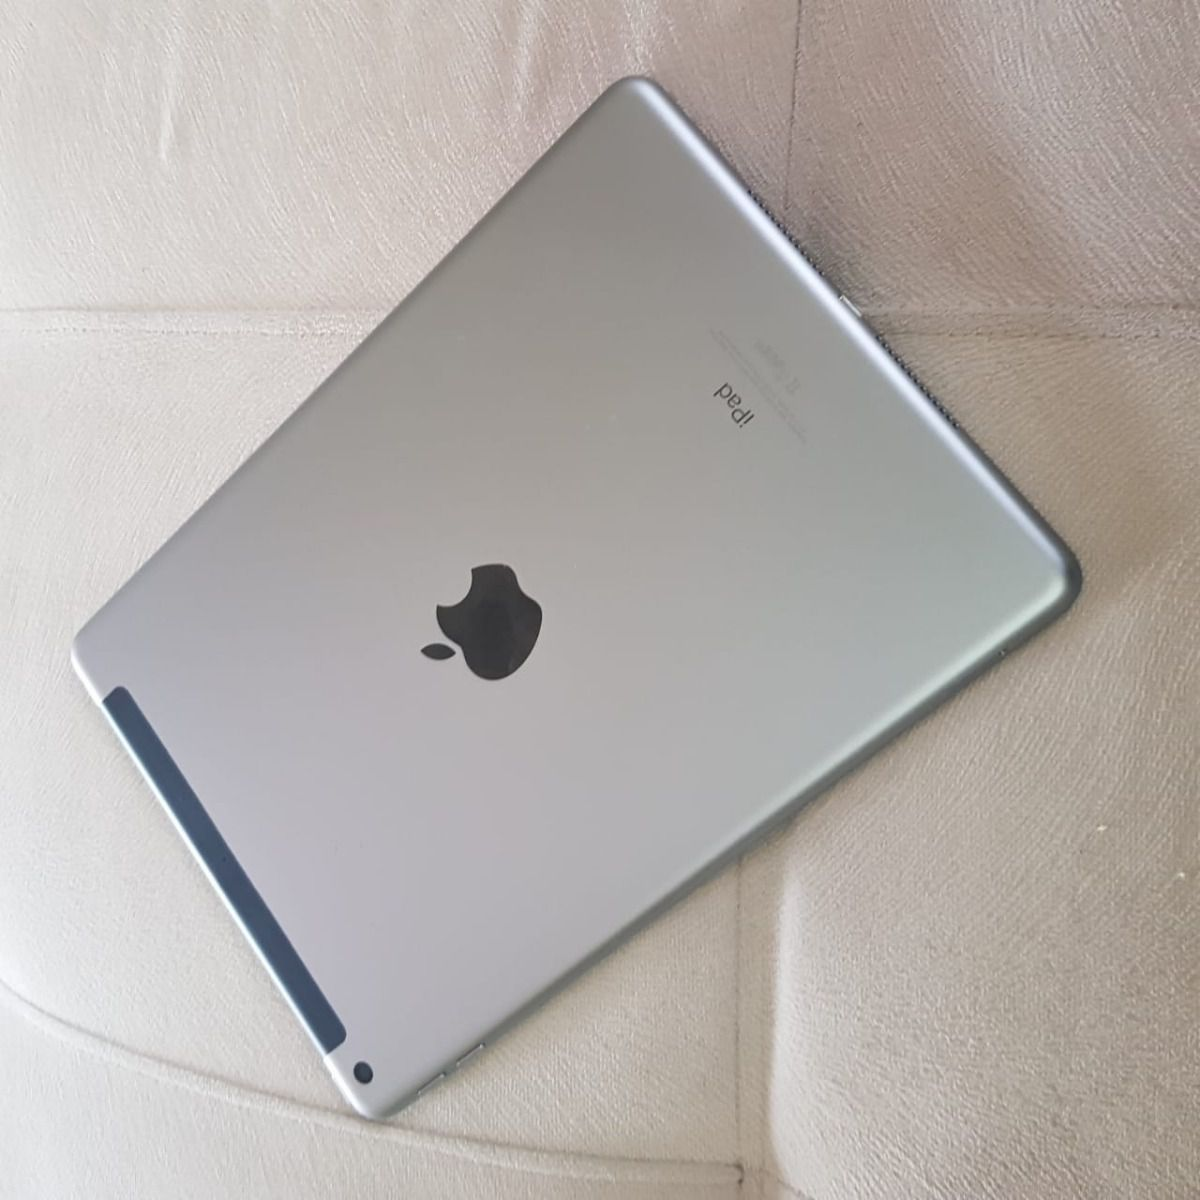 IPAD 6TH WIFI 4G 32GB CINZA ESPACIAL - MR6N2BZ/A